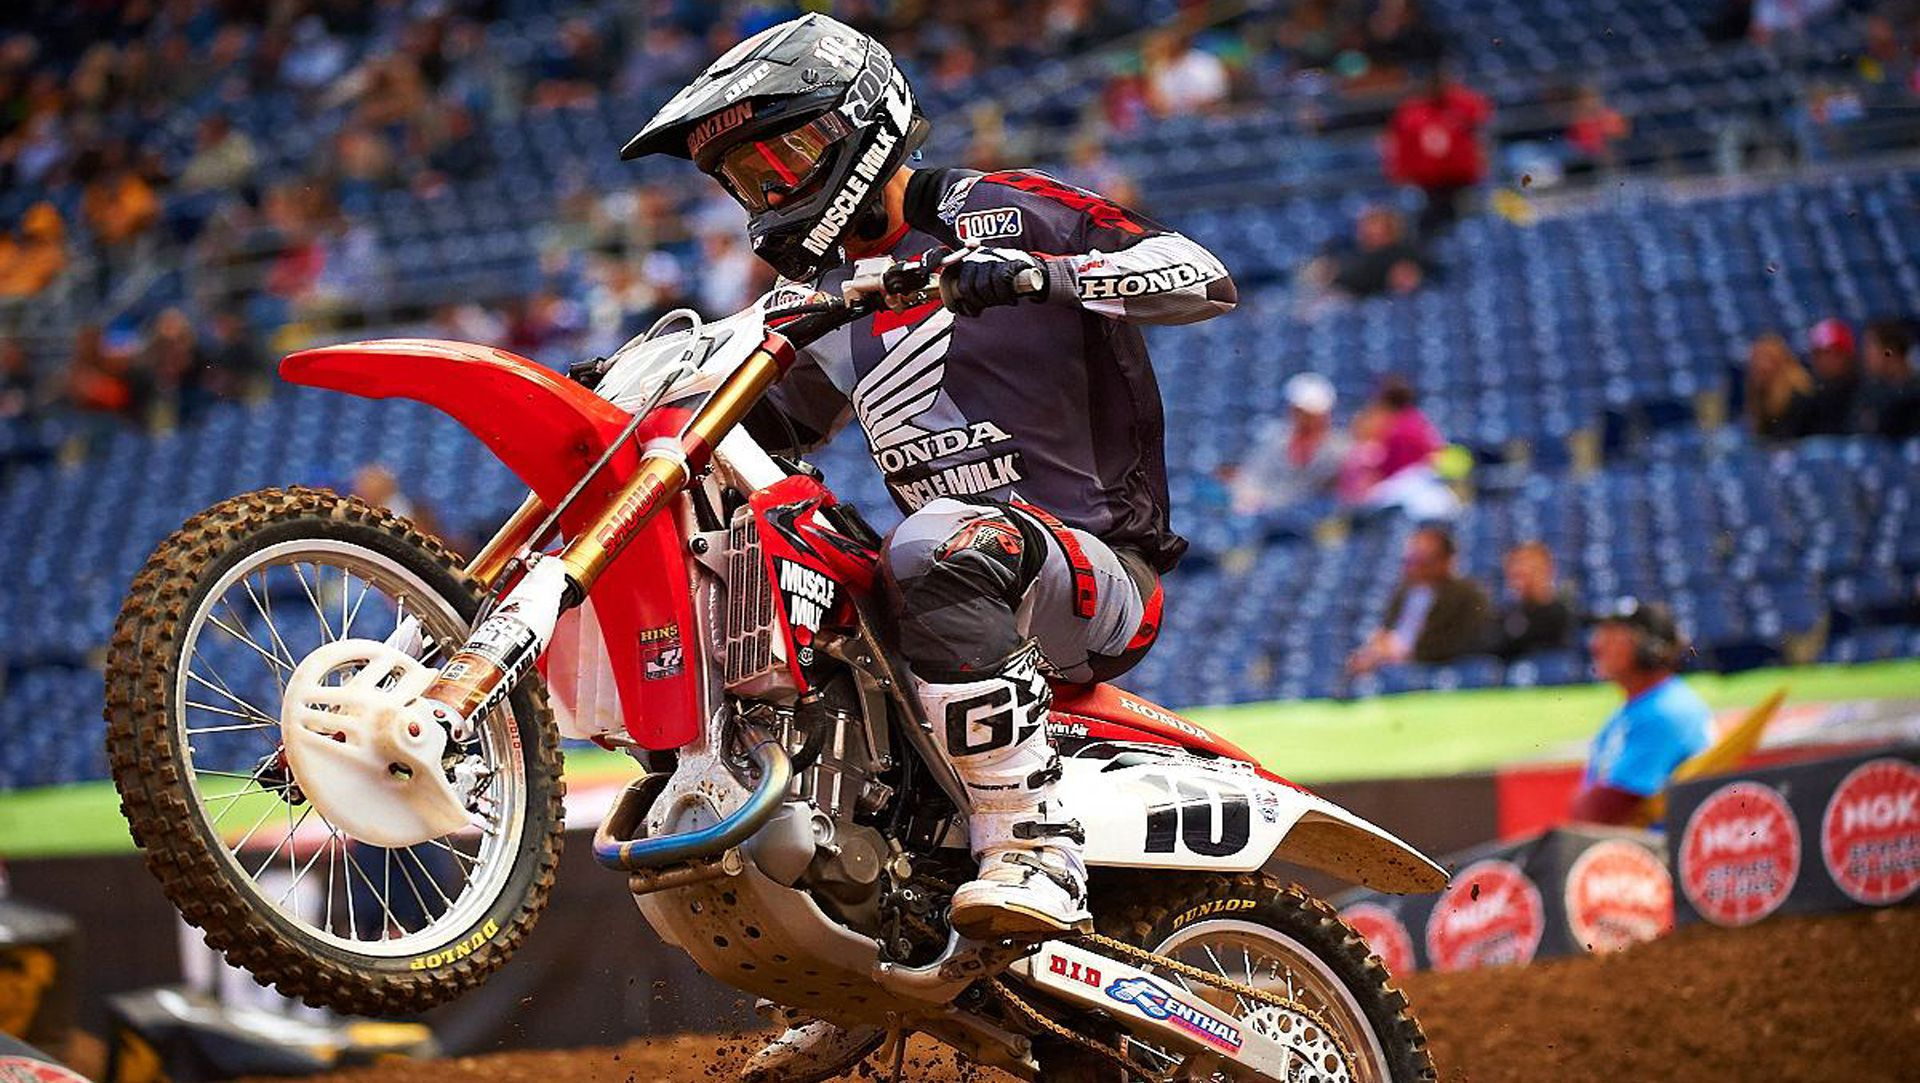 Honda Riders Battle Their Way to the Podium in San Diego